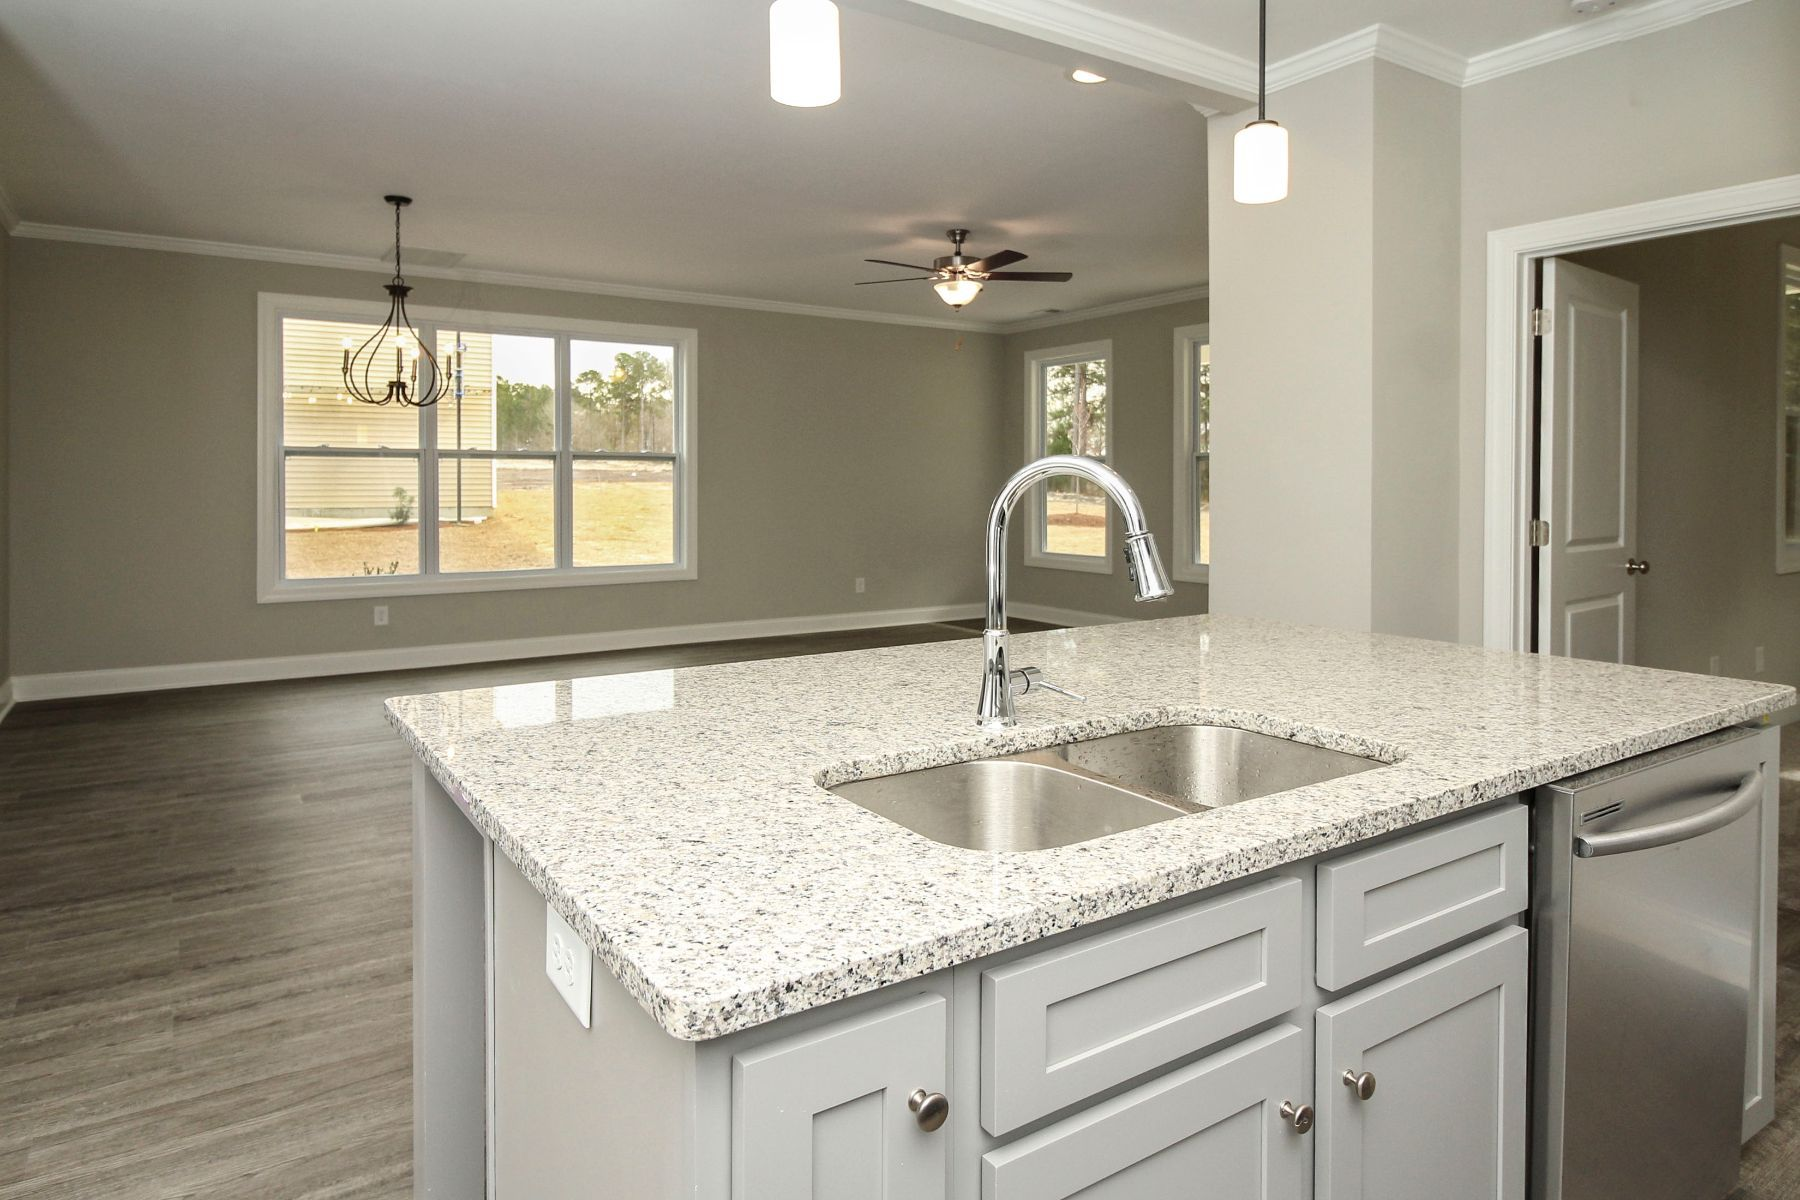 Kitchen featured in The Aviary By Executive Construction Homes in Columbia, SC